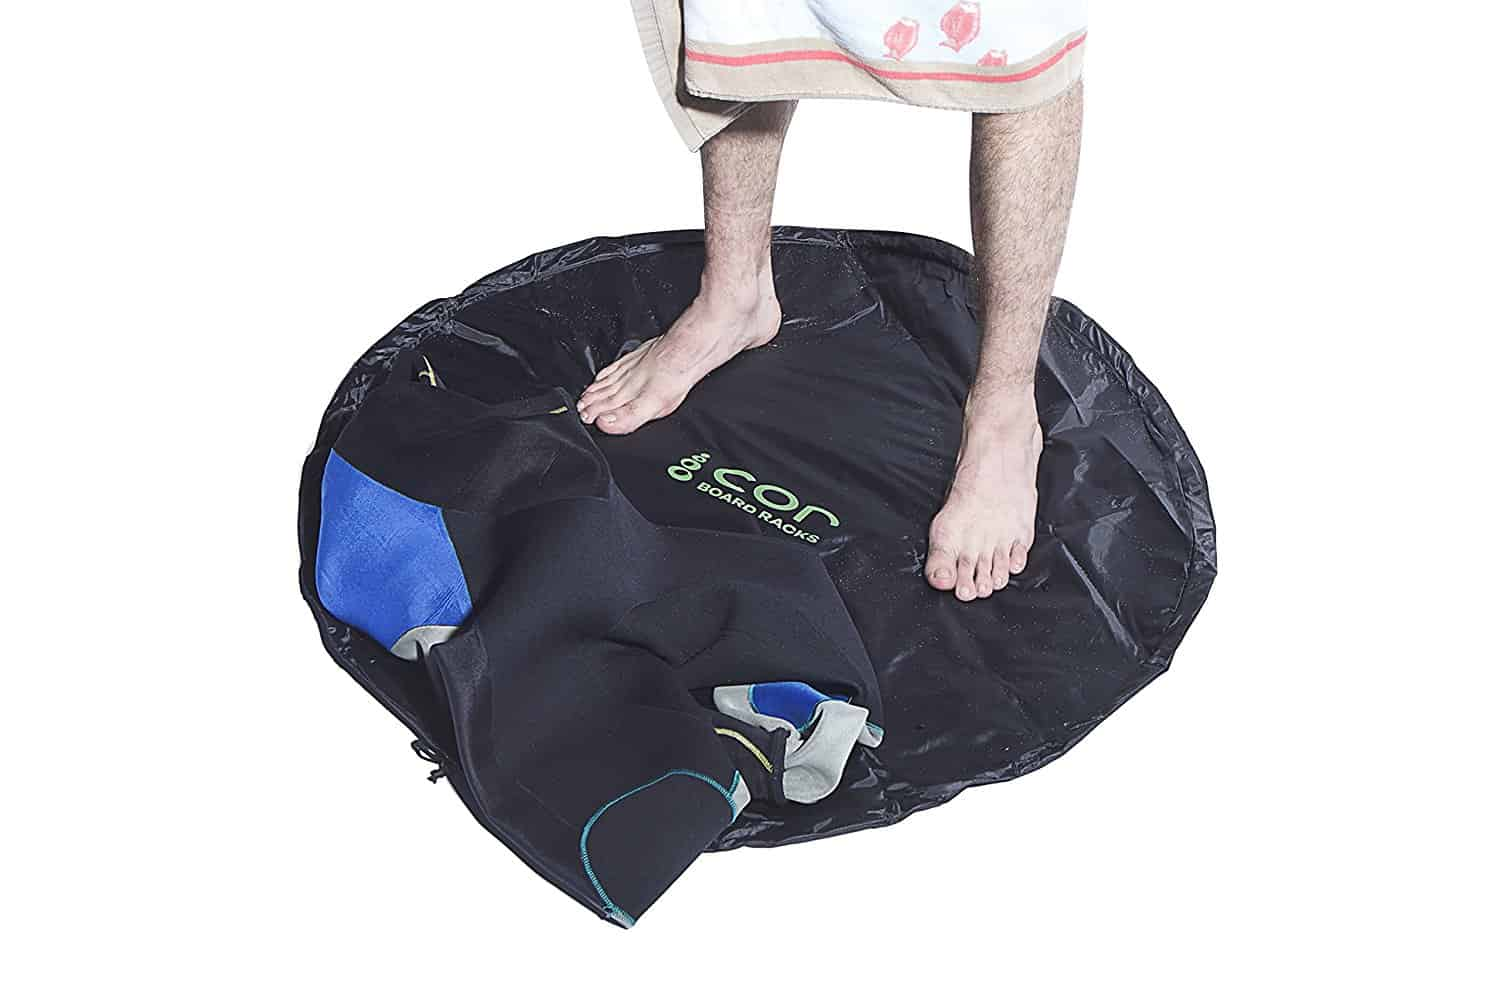 COR Surf Wetsuit Changing Mat and Bag